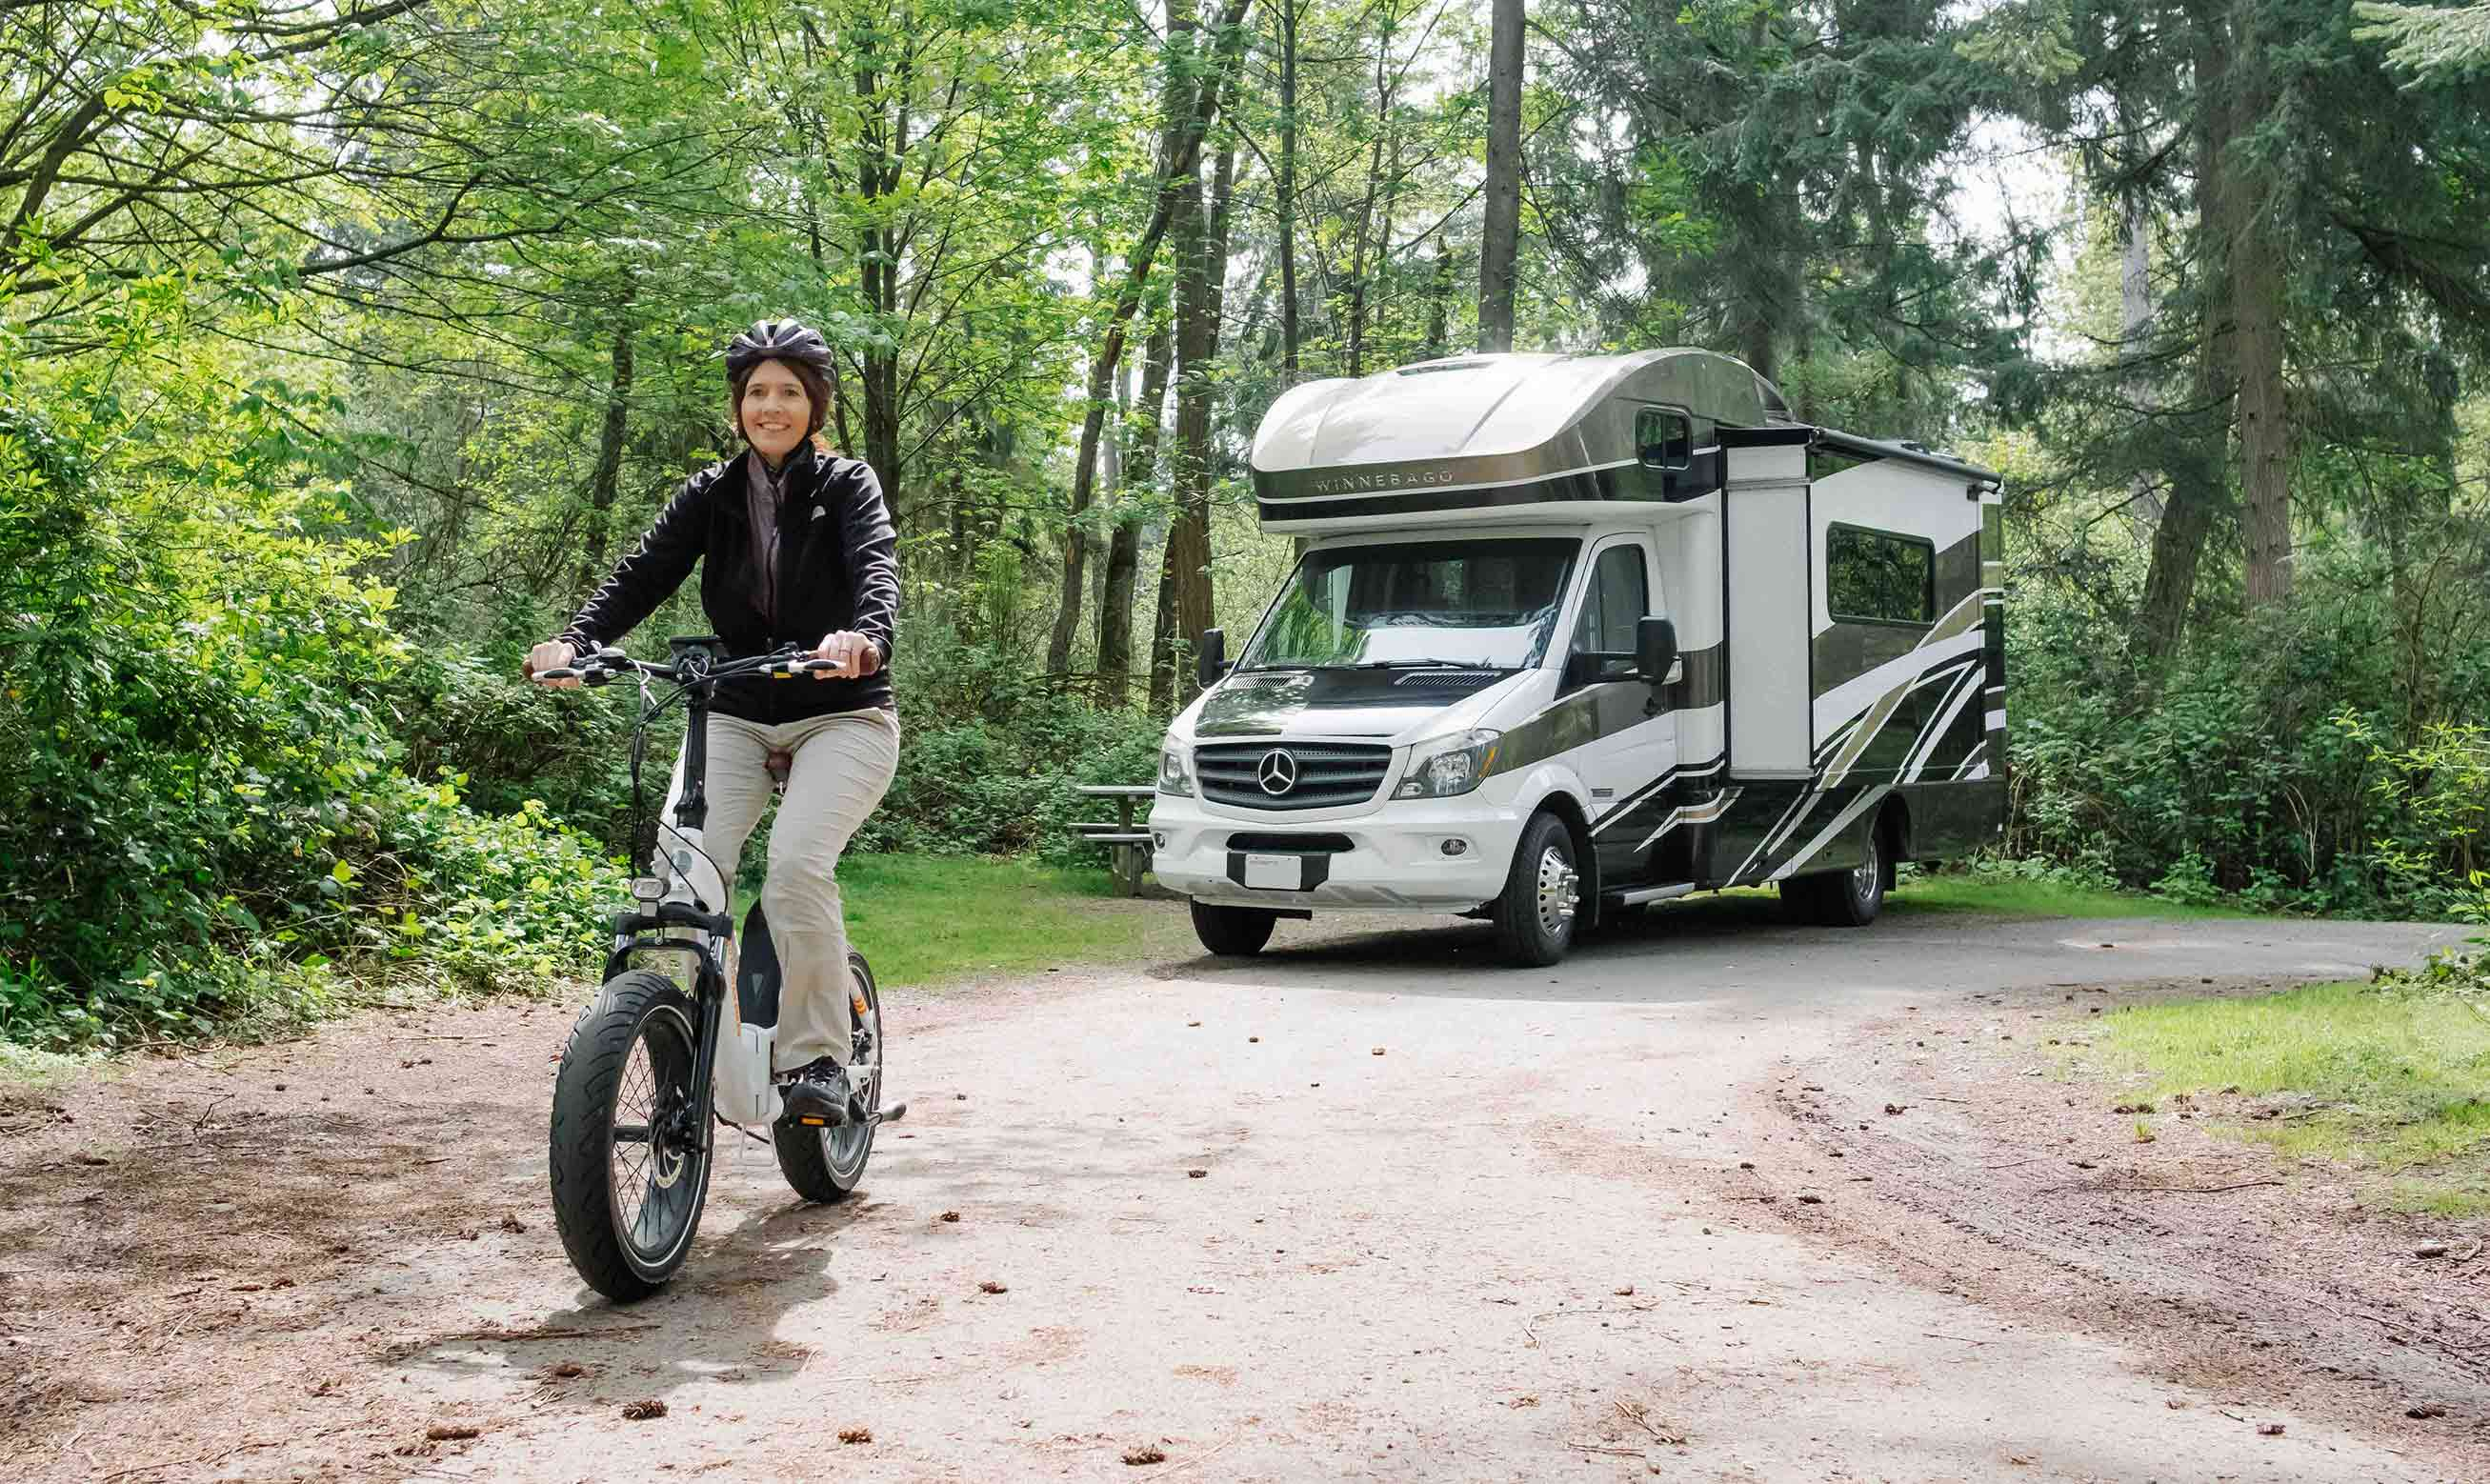 A woman rides away from her RV on a RadMini